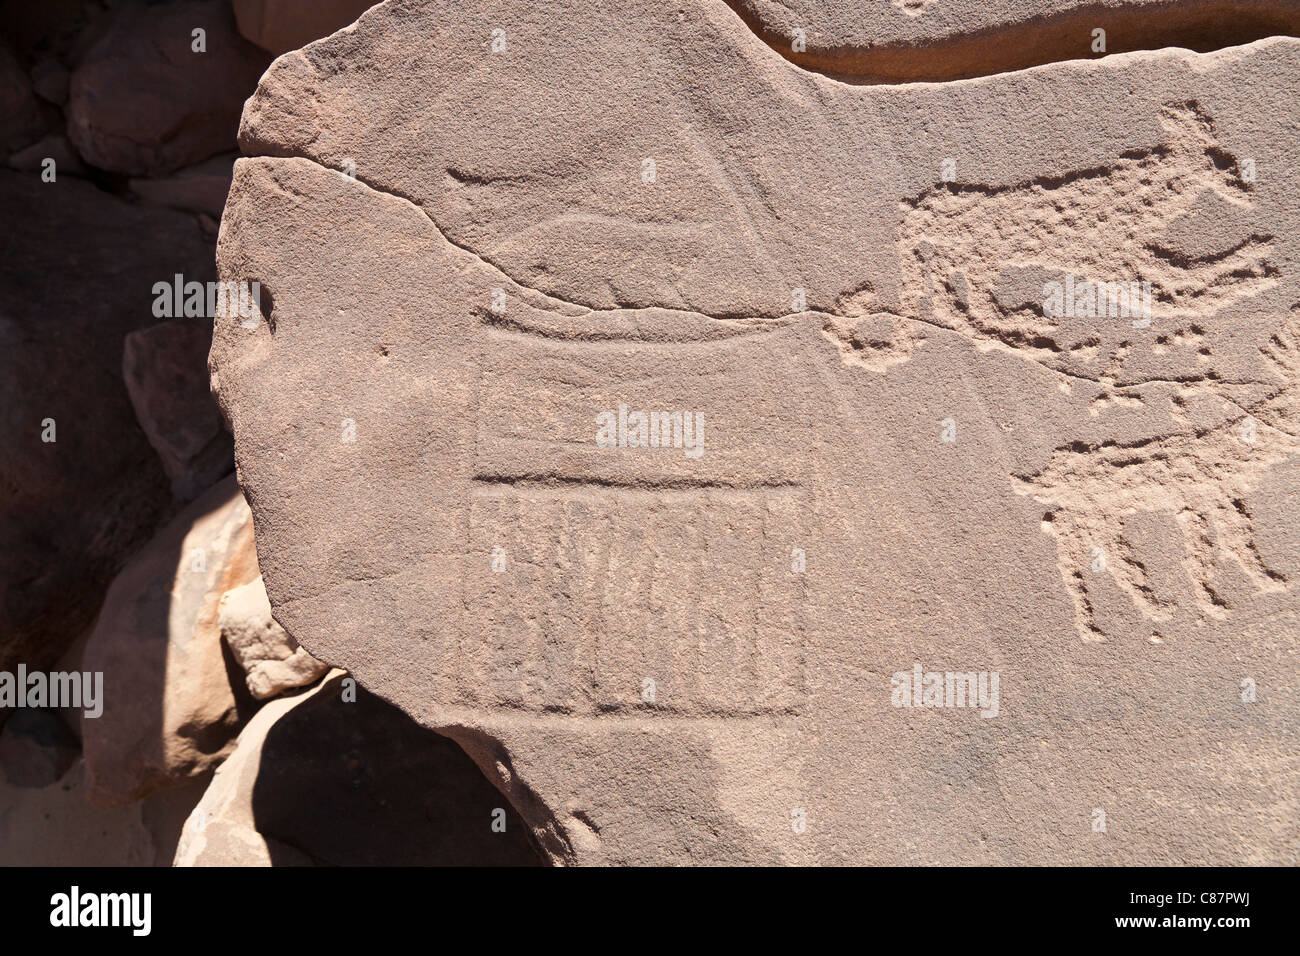 Rock-art showing early dynastic serekhs in the Eastern Desert of Egypt, North North Africa - Stock Image